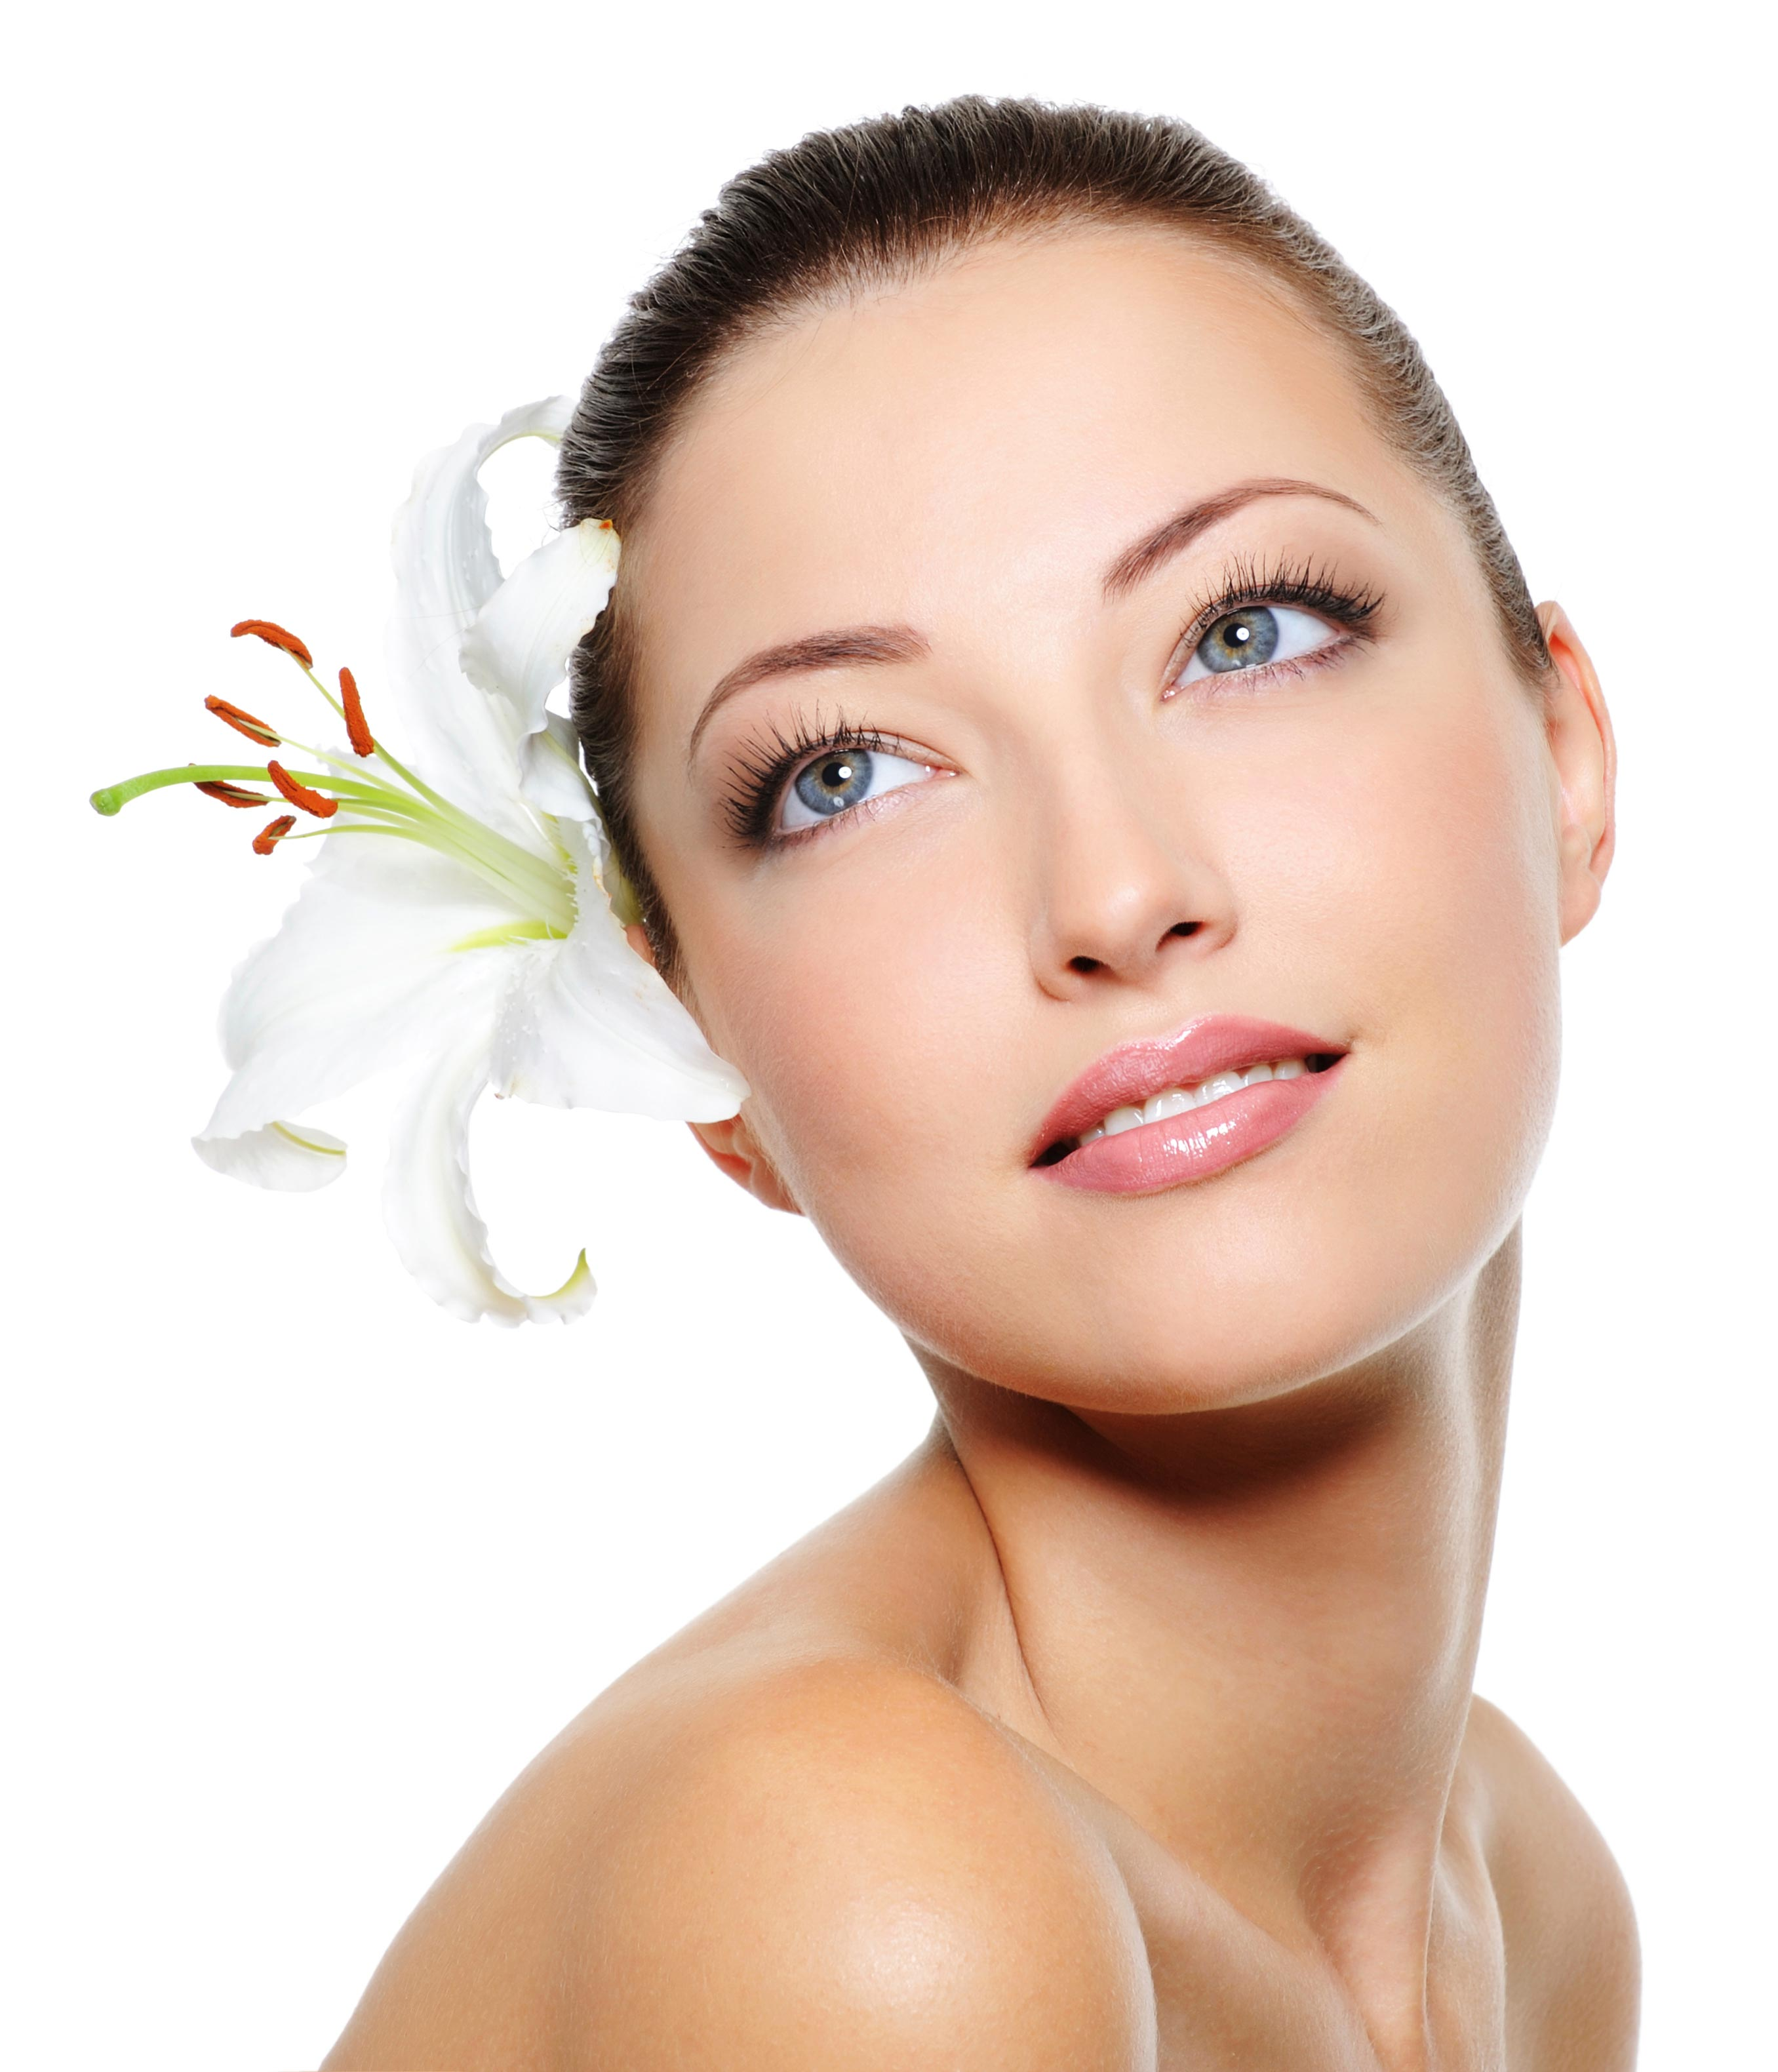 How To Have Healthy Looking Skin Naturally